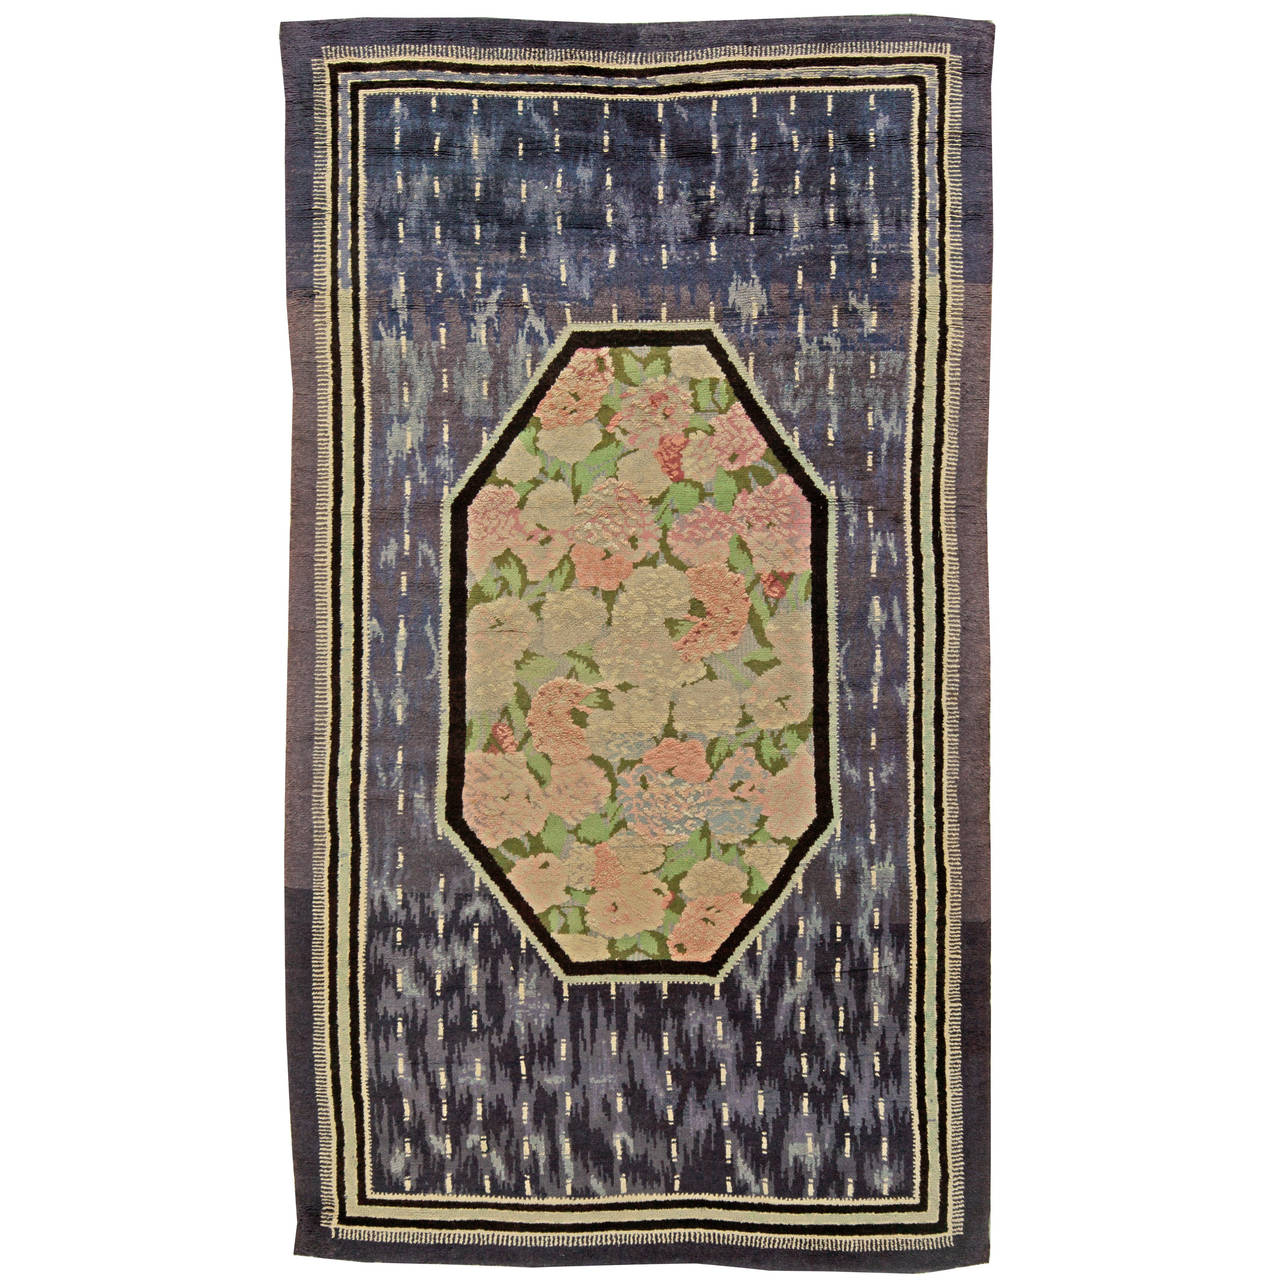 Vintage french art deco rug at 1stdibs for Deco rugs carpet